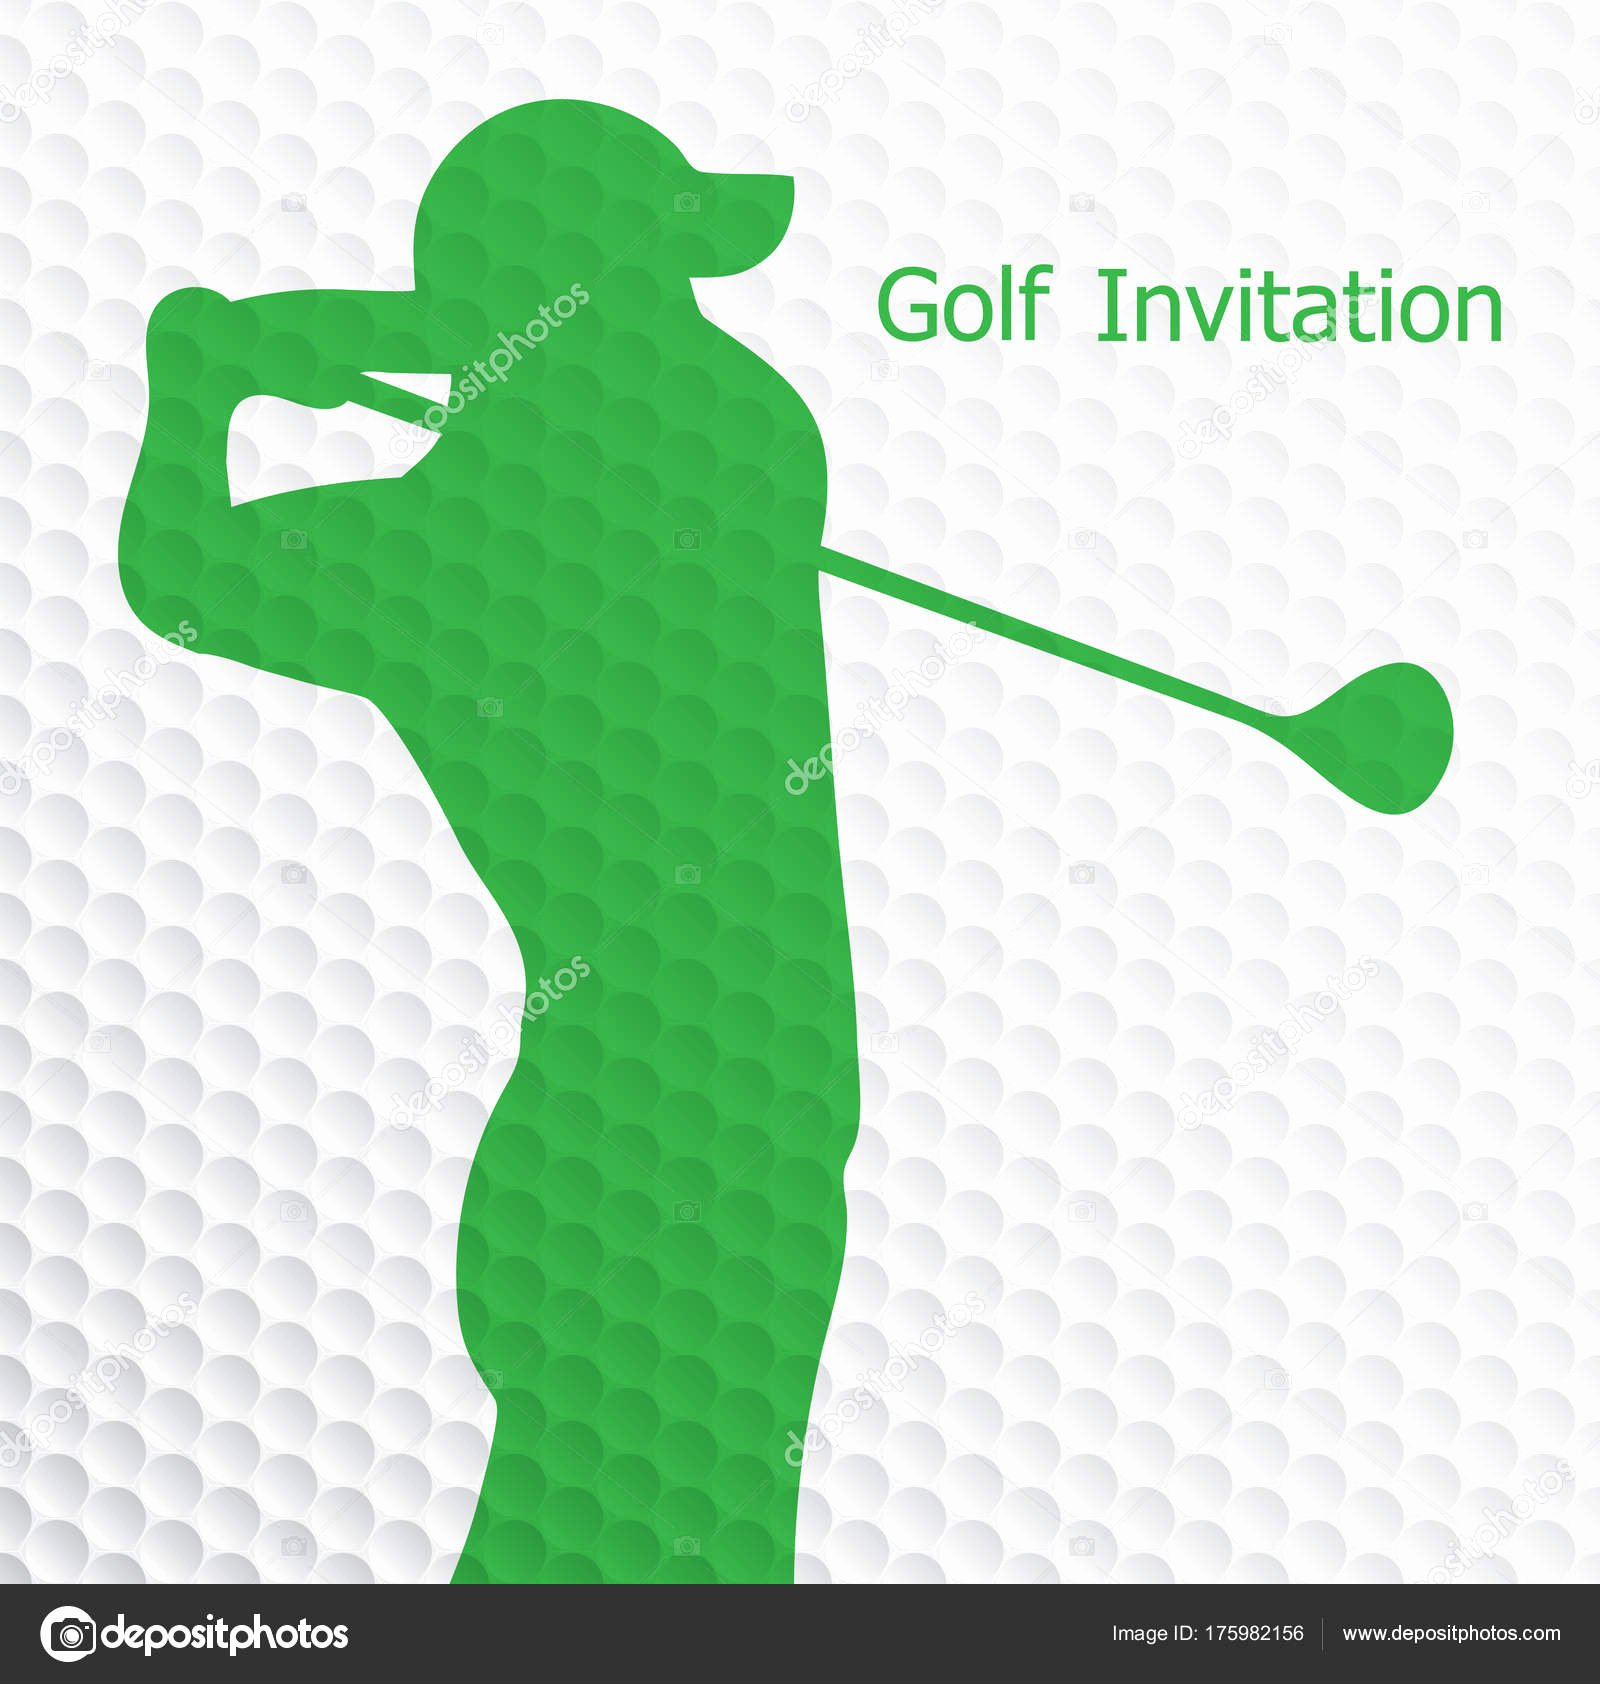 Golf Invitation Template Free Download Inspirational Golf tournament Invitation Flyer Template Graphic Design